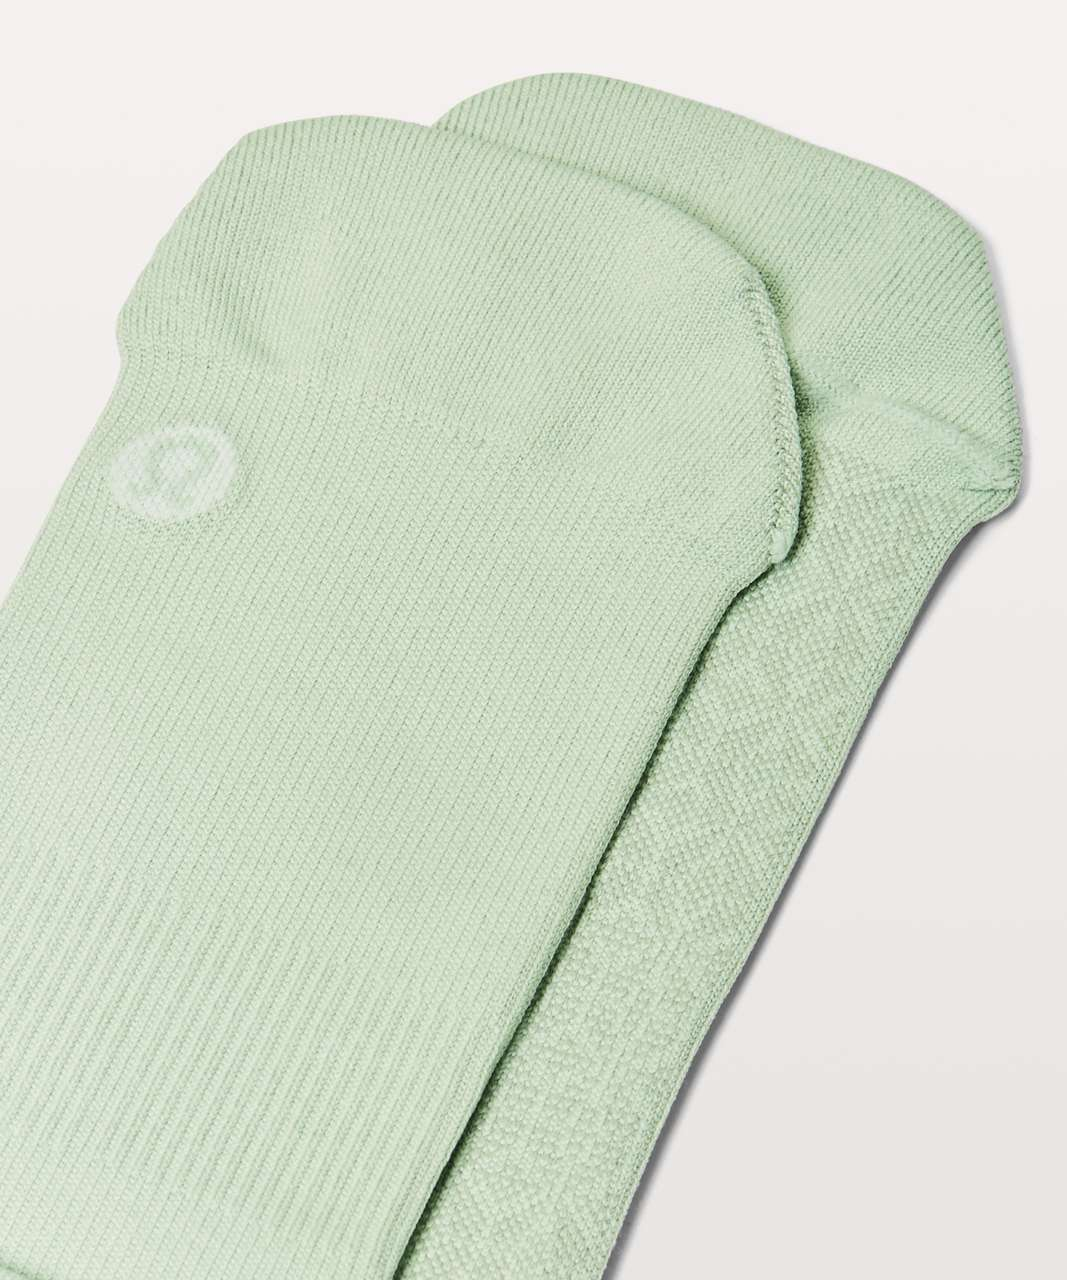 Lululemon Light Speed Sock Silver - Julep